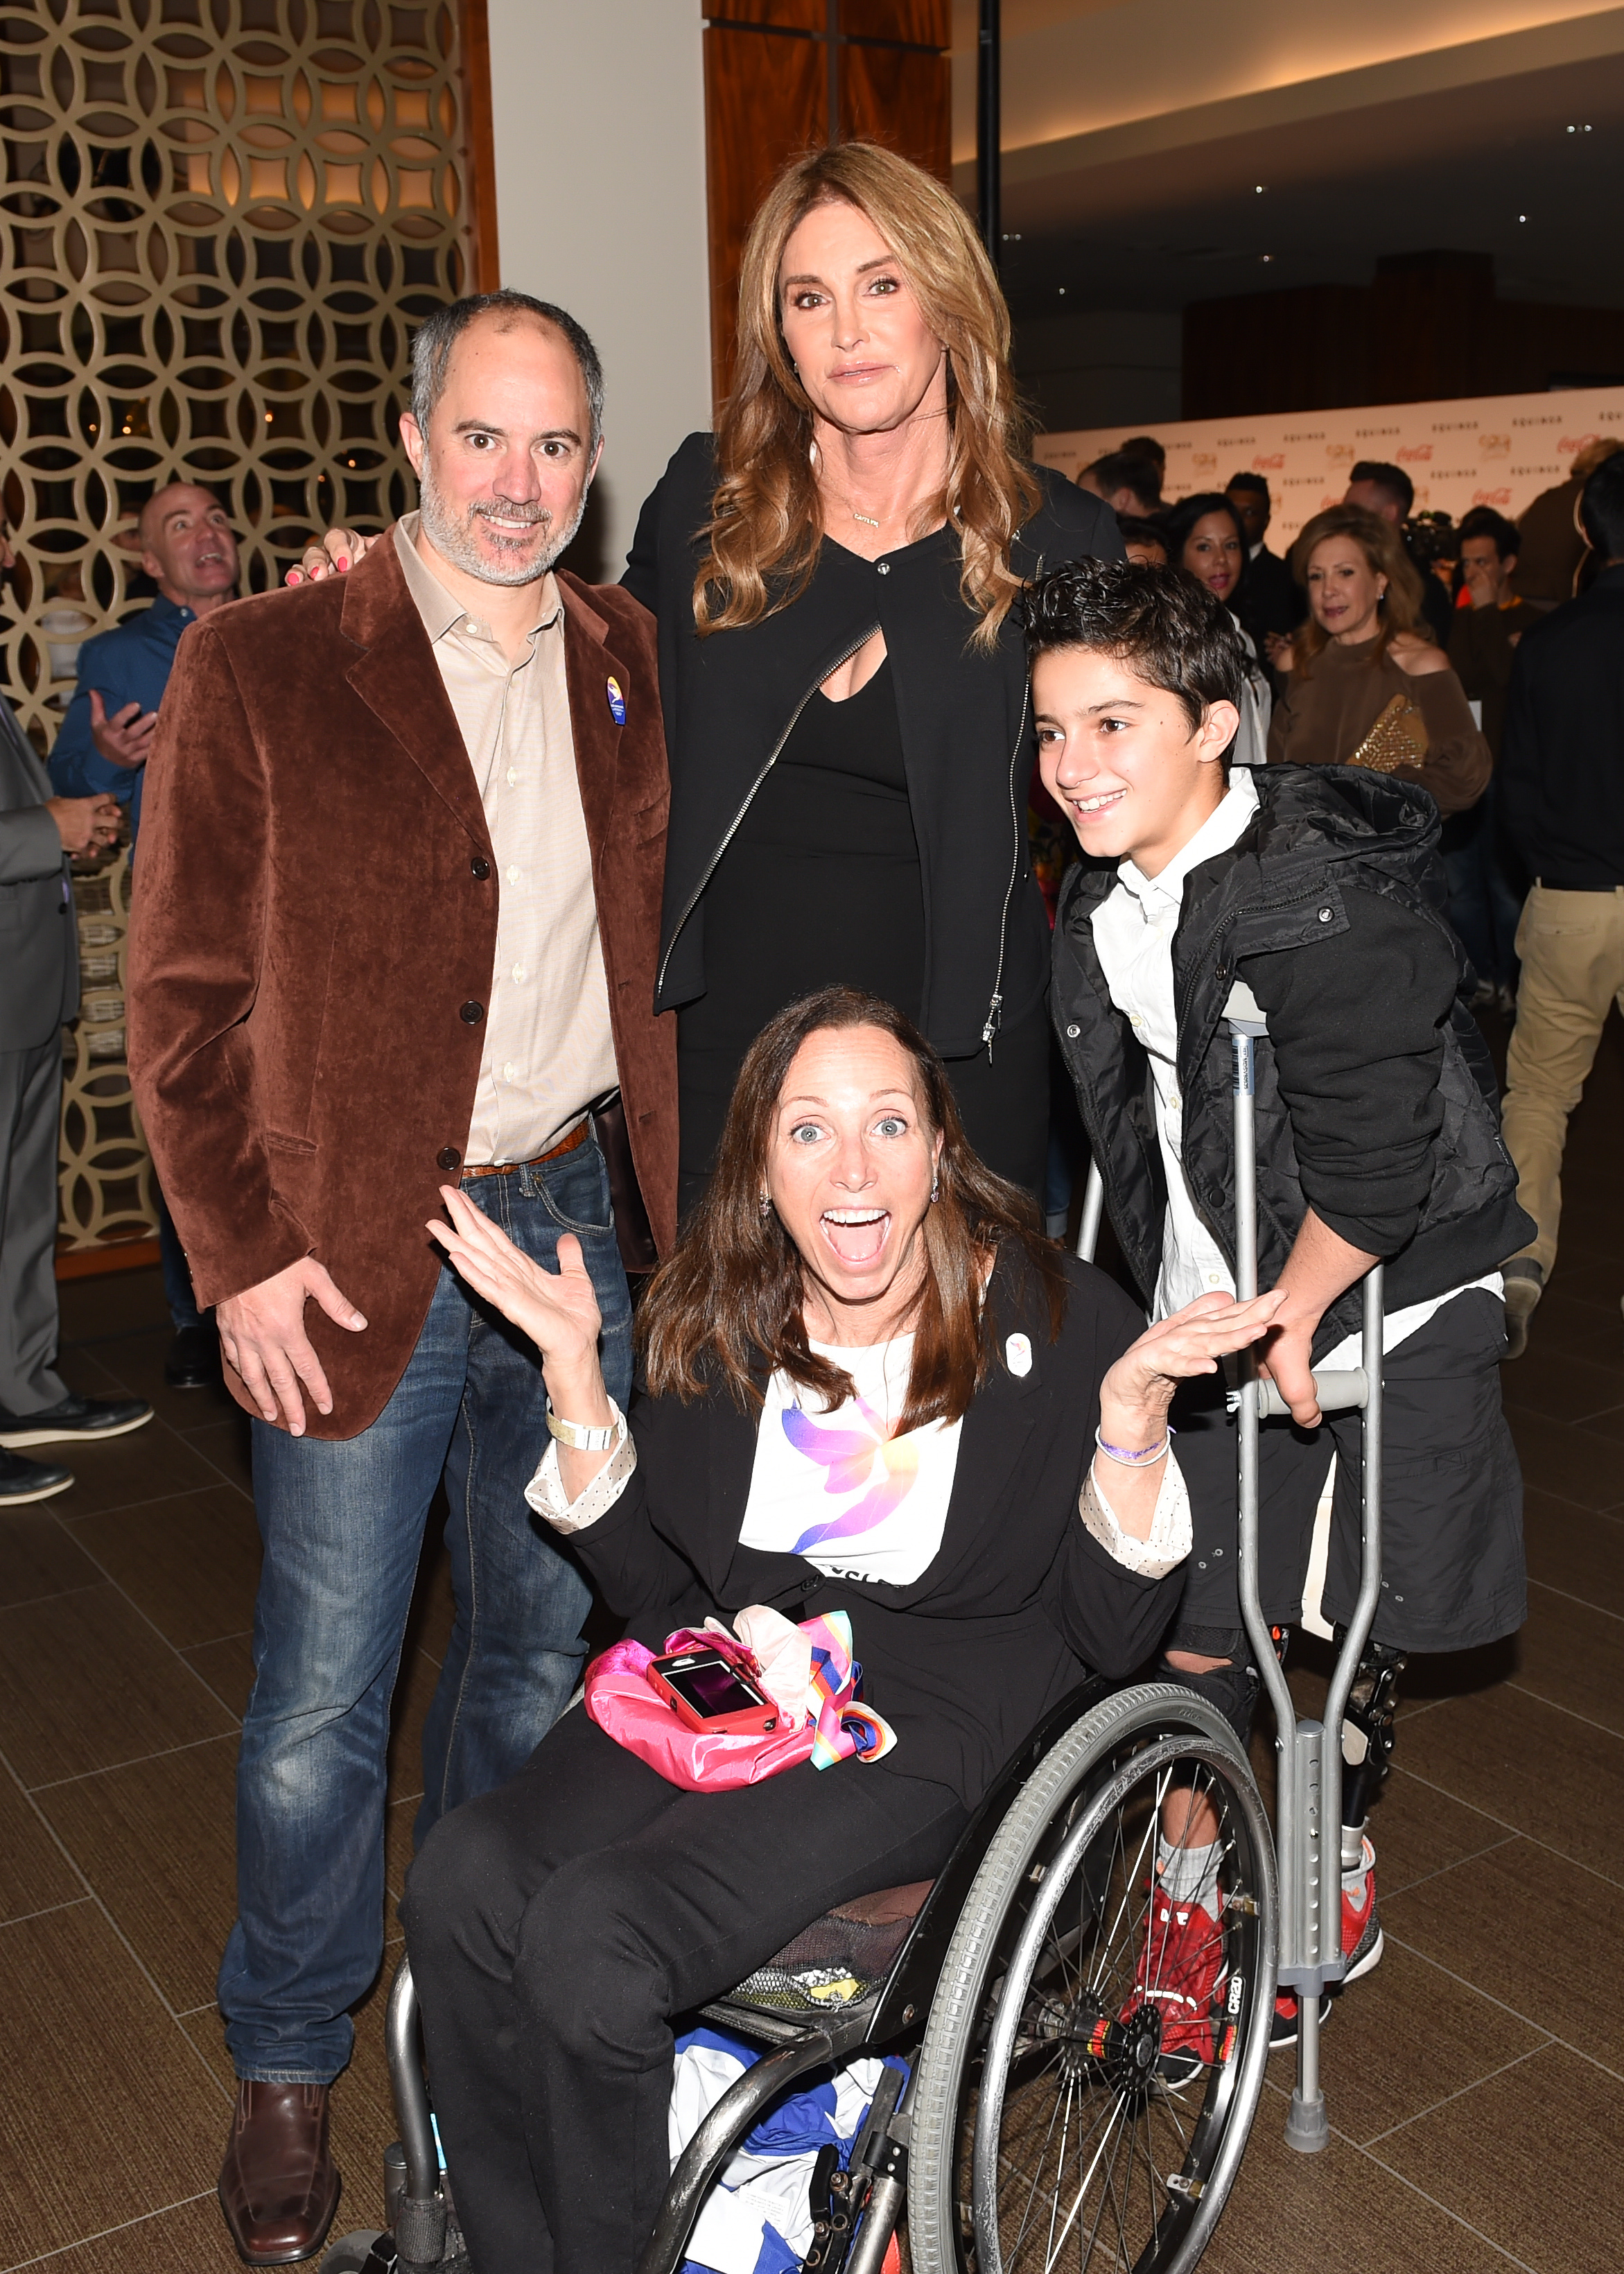 Caitlyn Jenner with Paralympians Candace Cable and Ezra Frech.jpg